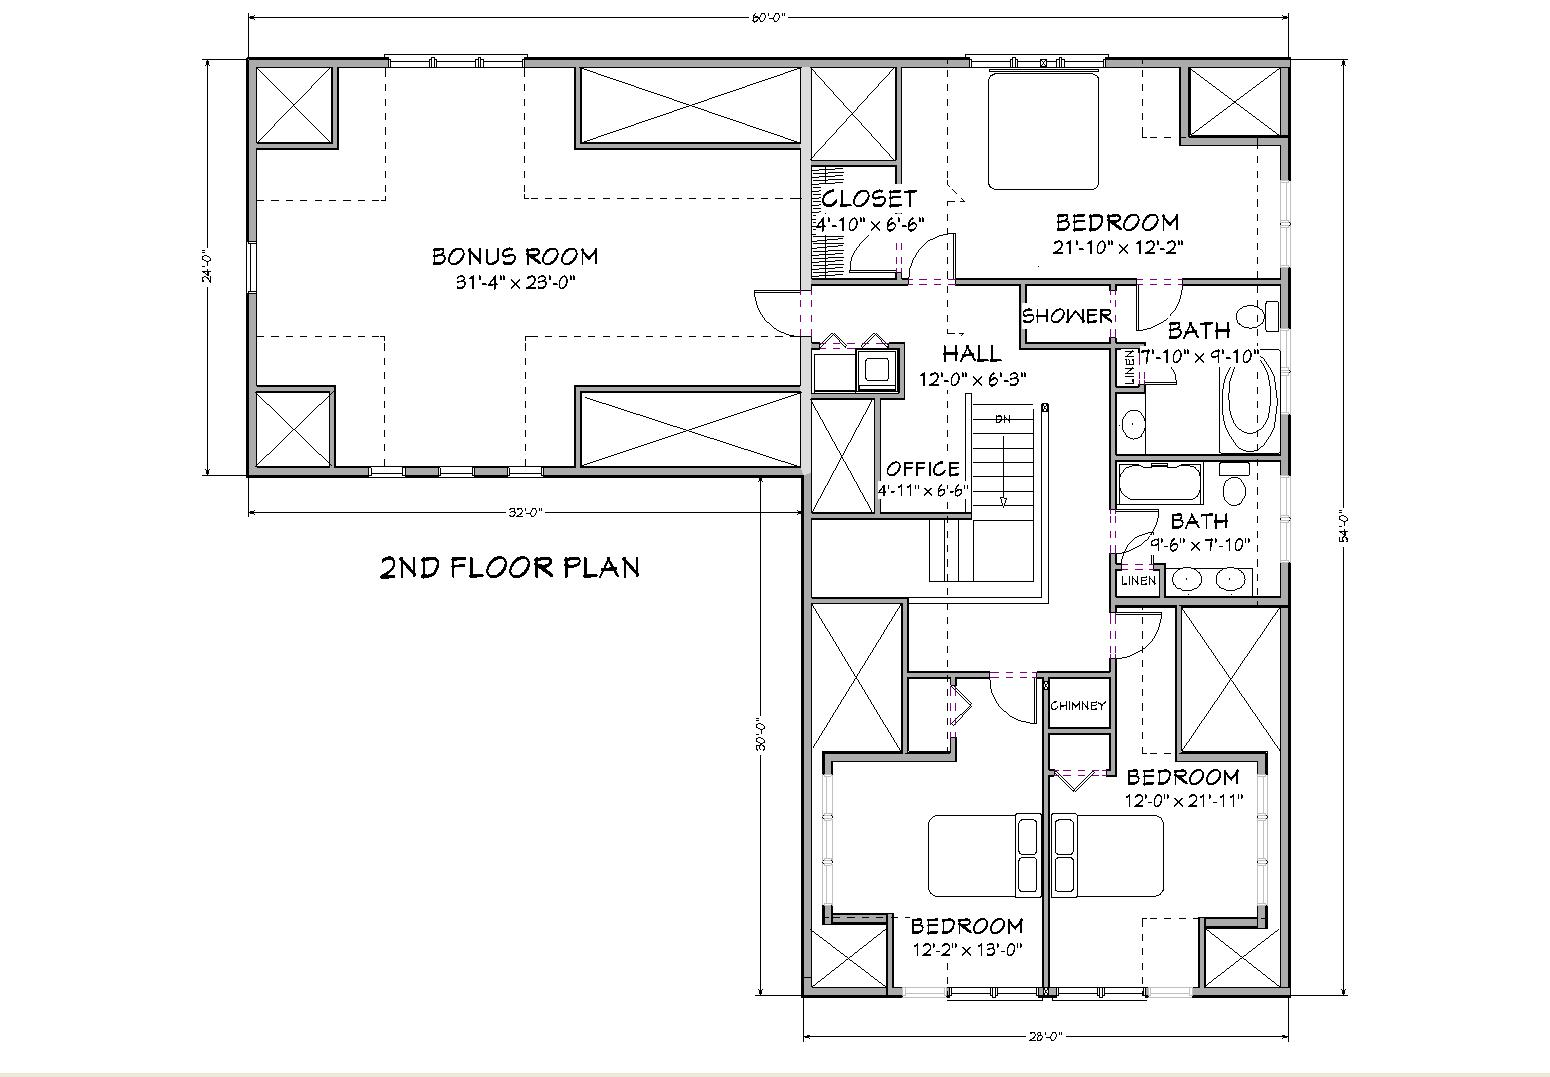 3000 square foot home plans floor plans for Floor plans for 3000 sq ft homes